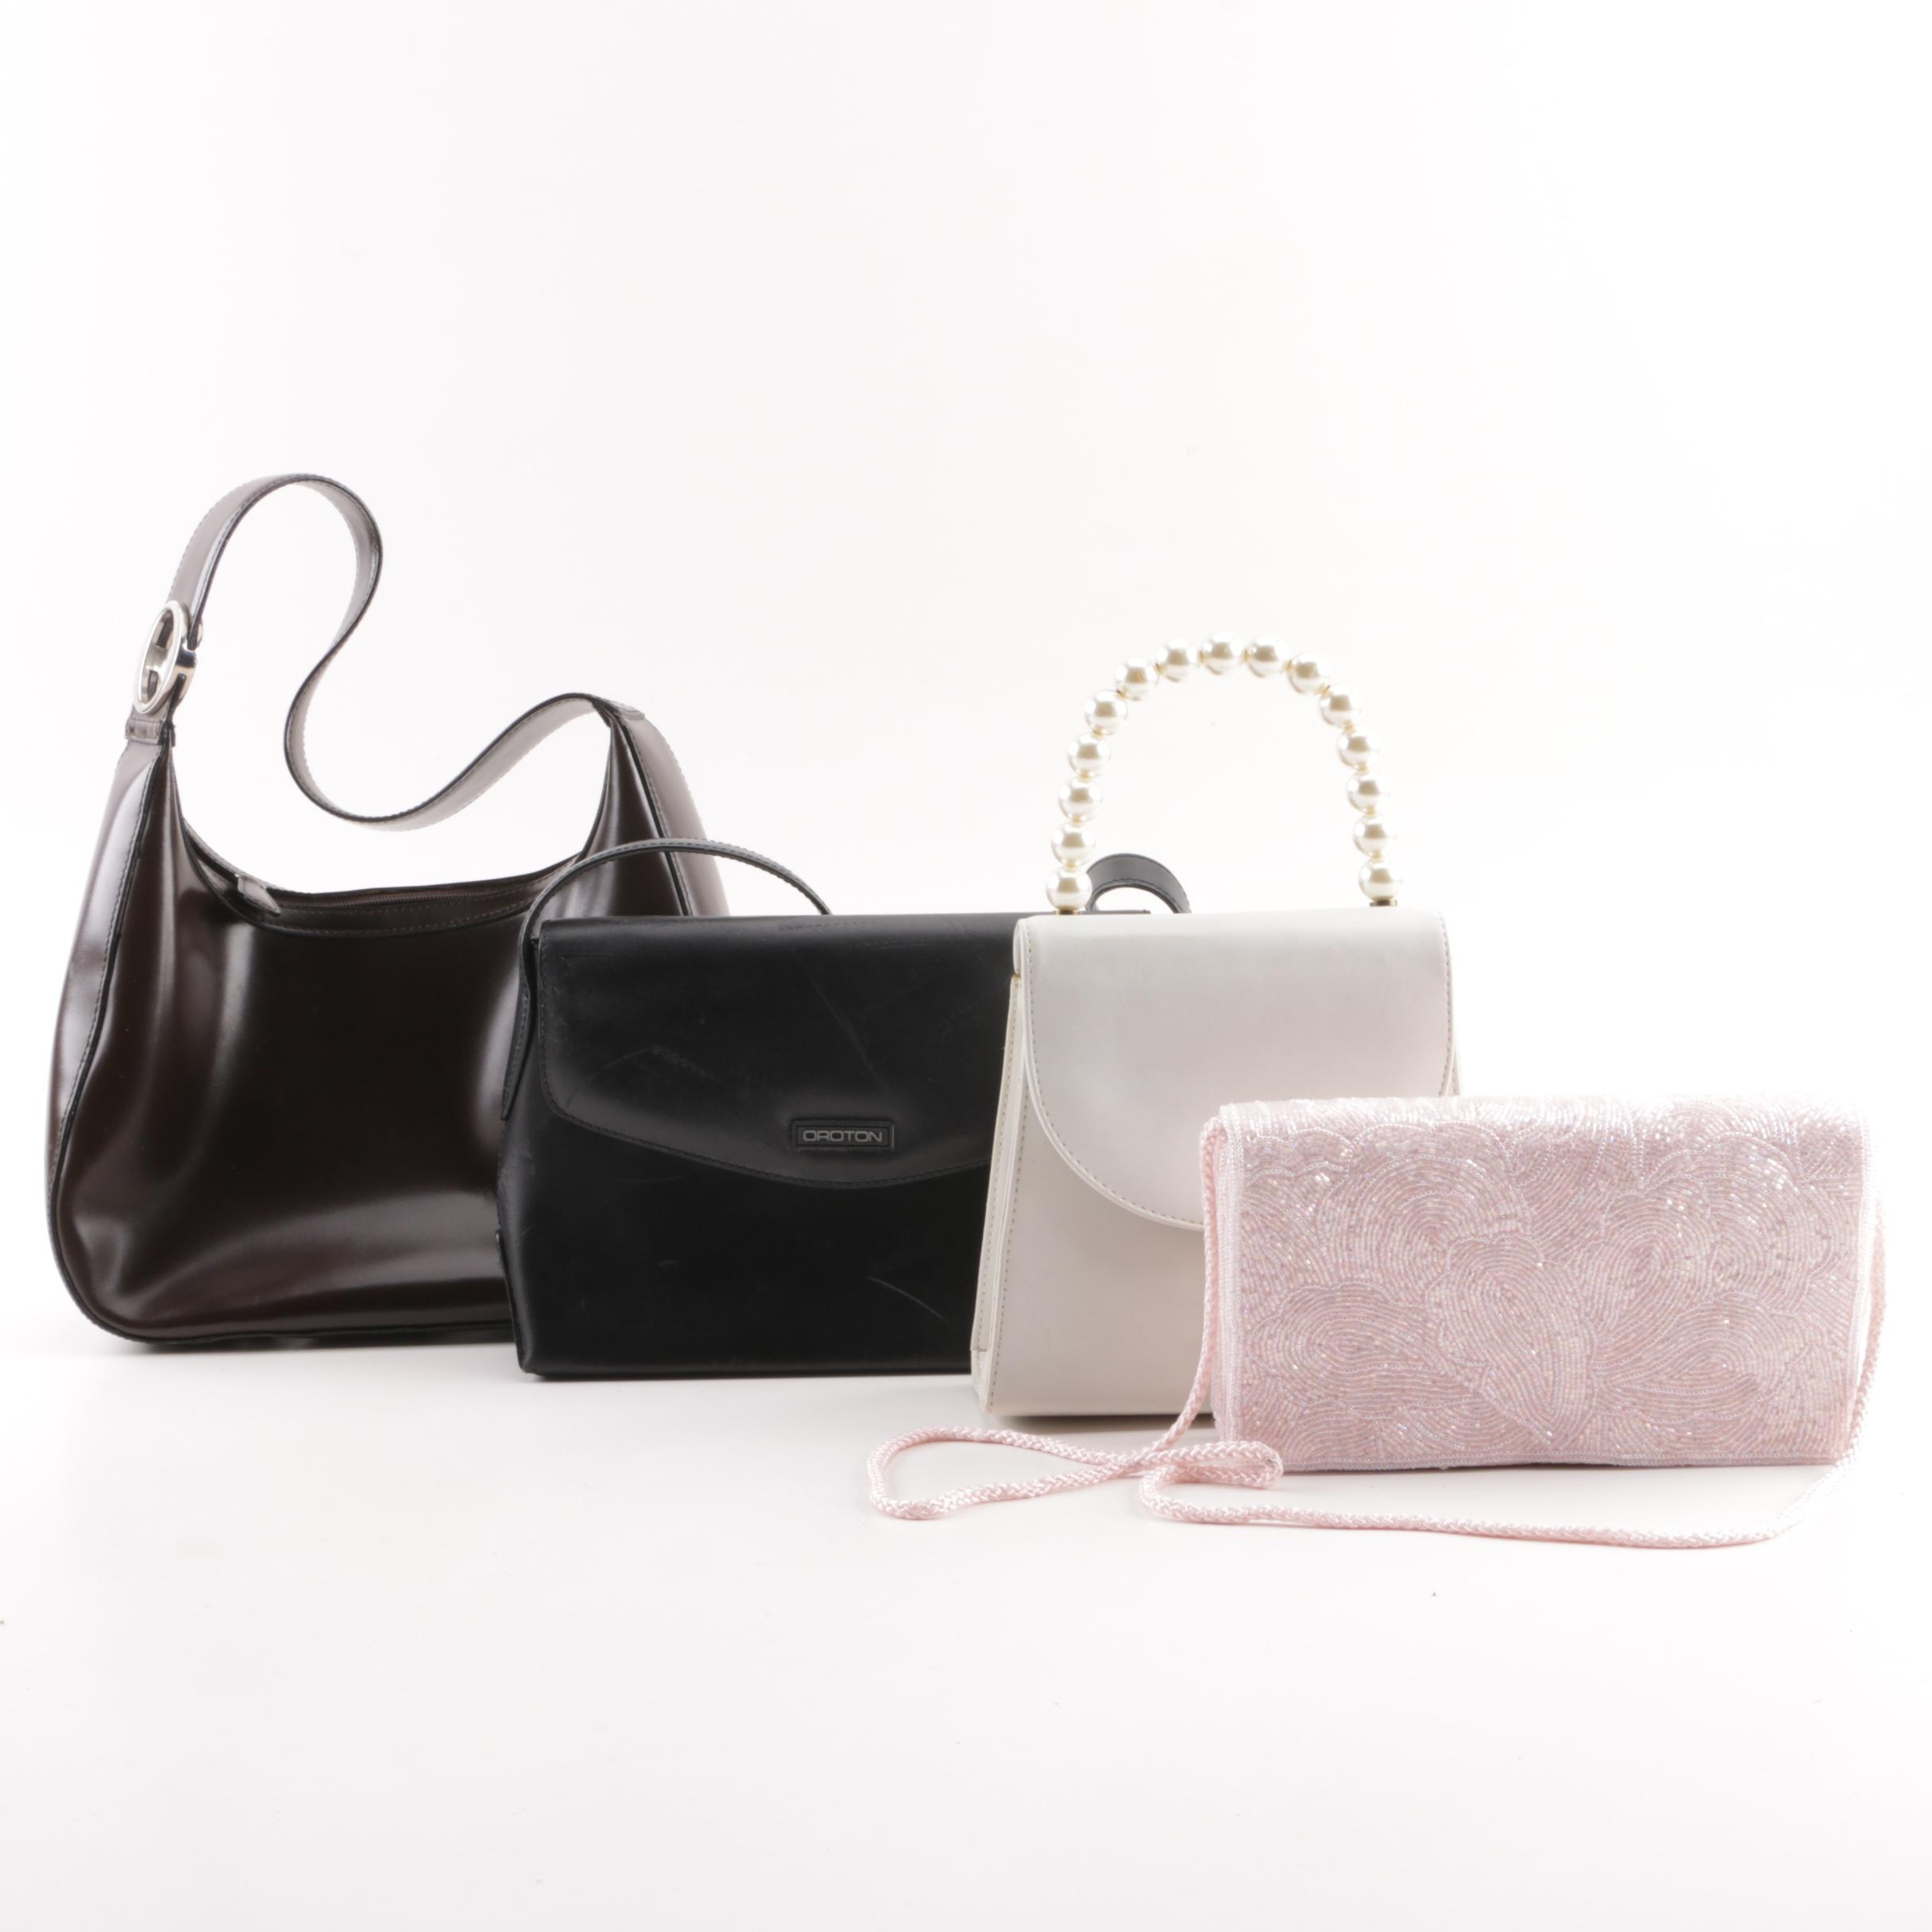 Women's Evening and Shoulder Bags Including Lord & Taylor and Oroton